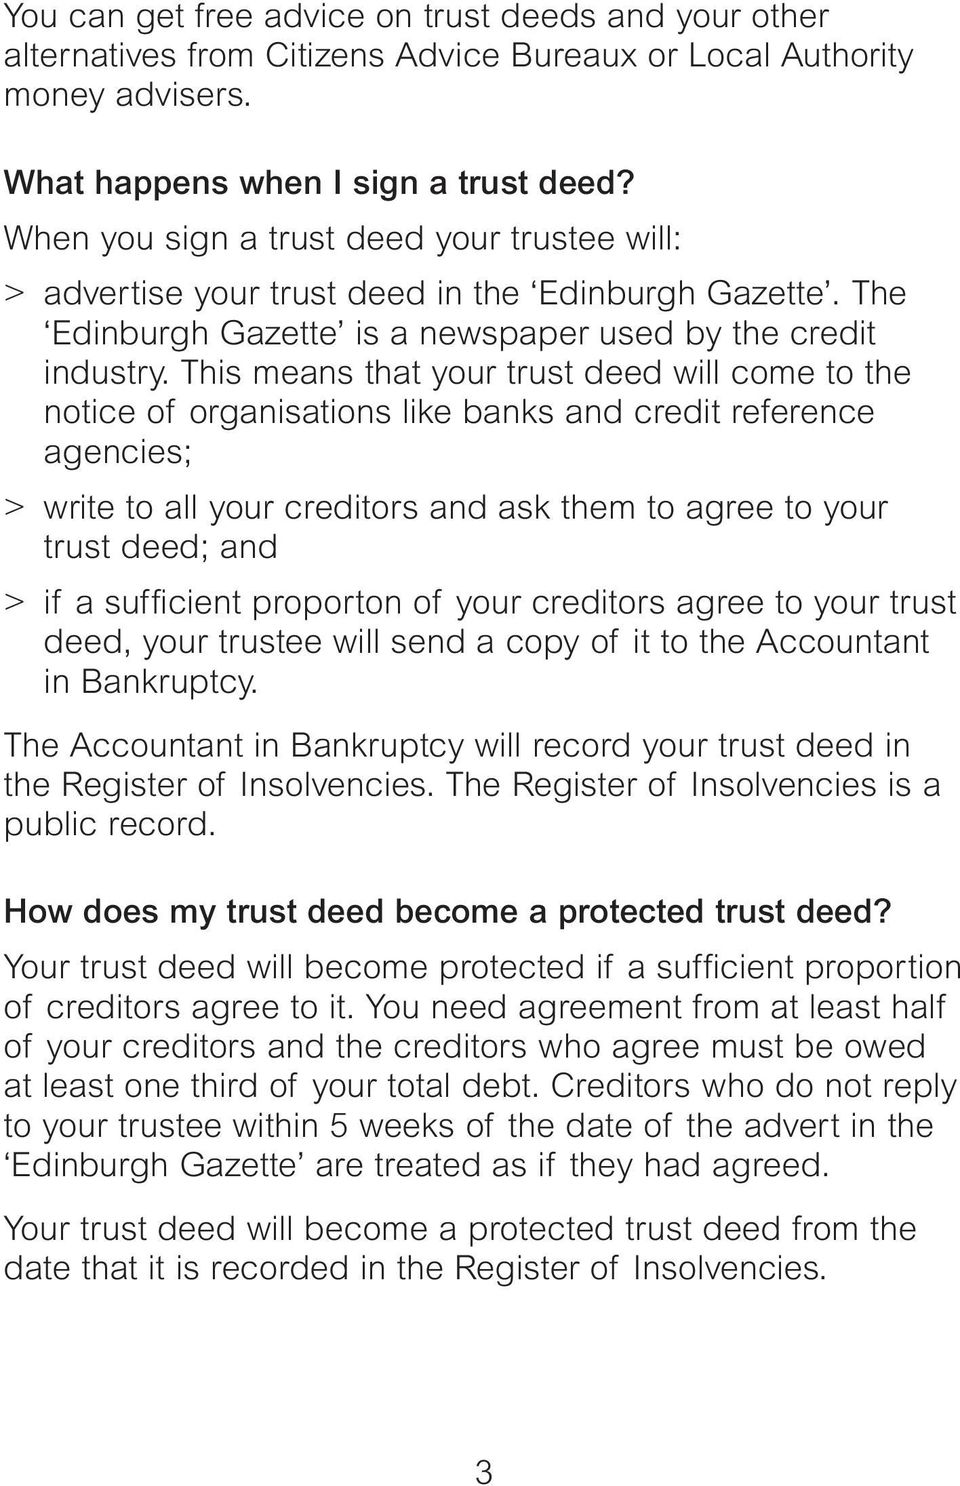 This means that your trust deed will come to the notice of organisations like banks and credit reference agencies; > write to all your creditors and ask them to agree to your trust deed; and > if a